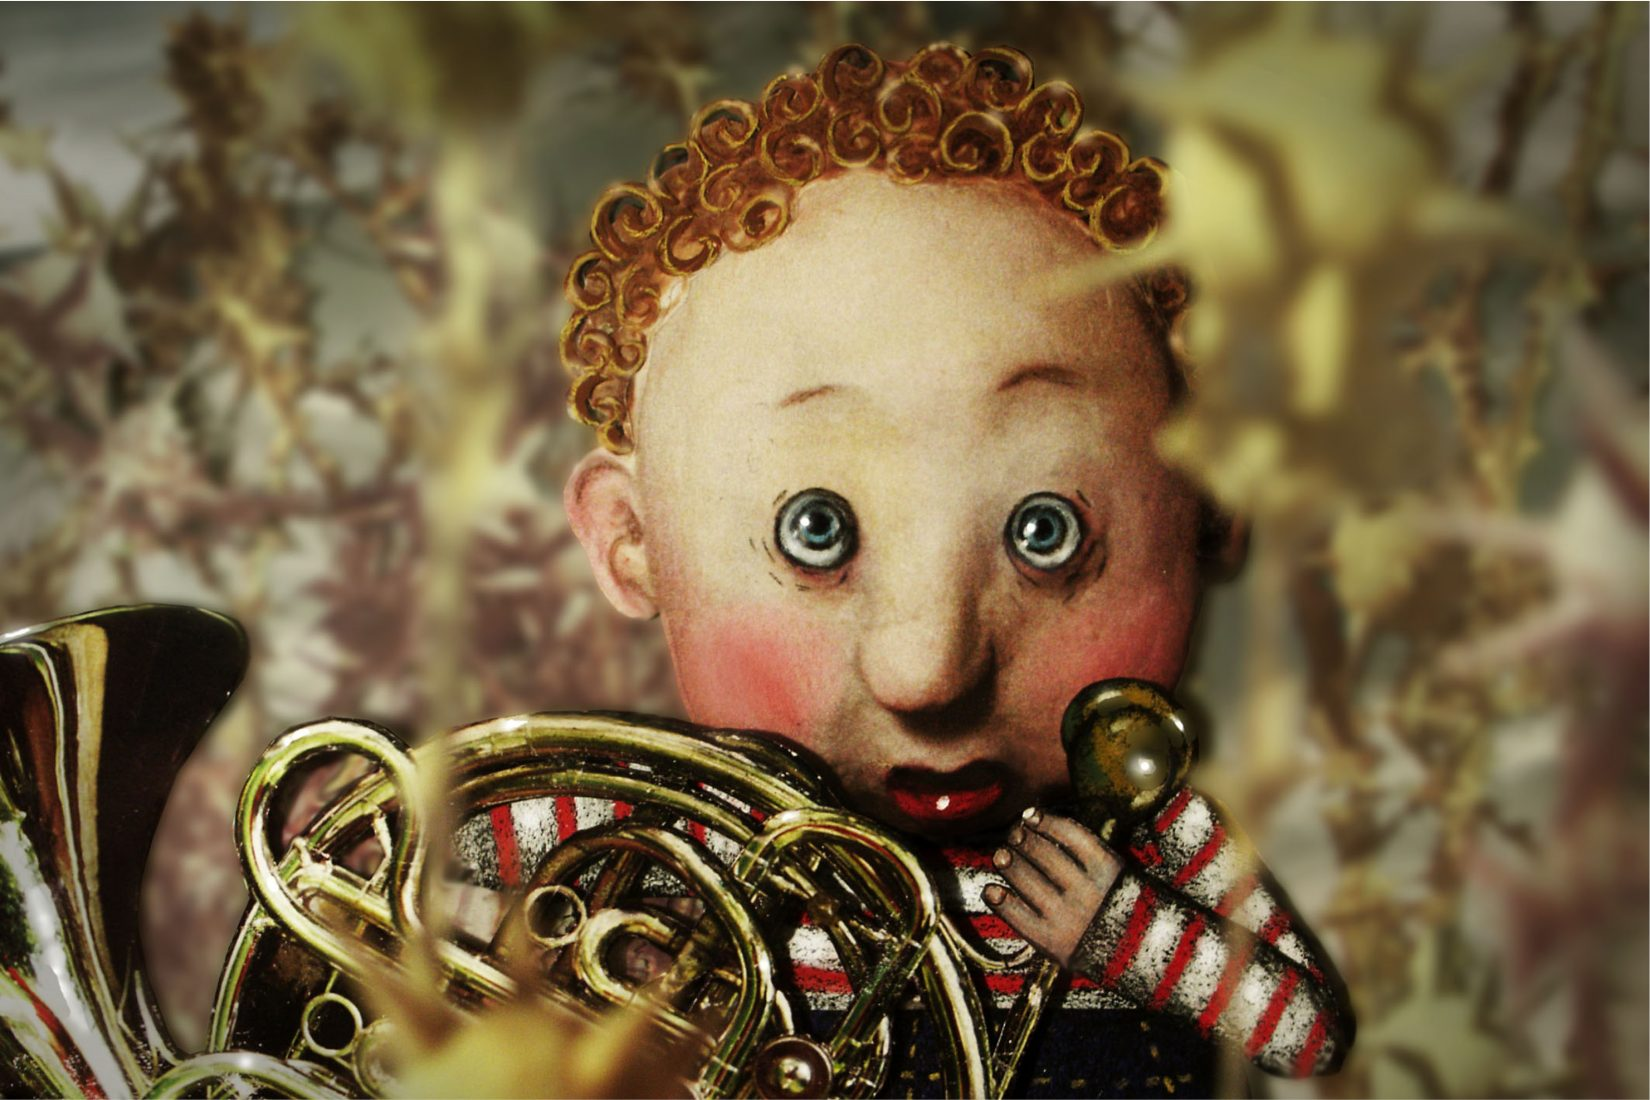 Image in 3D of a young boy looking scared and shy and holding a French horn.